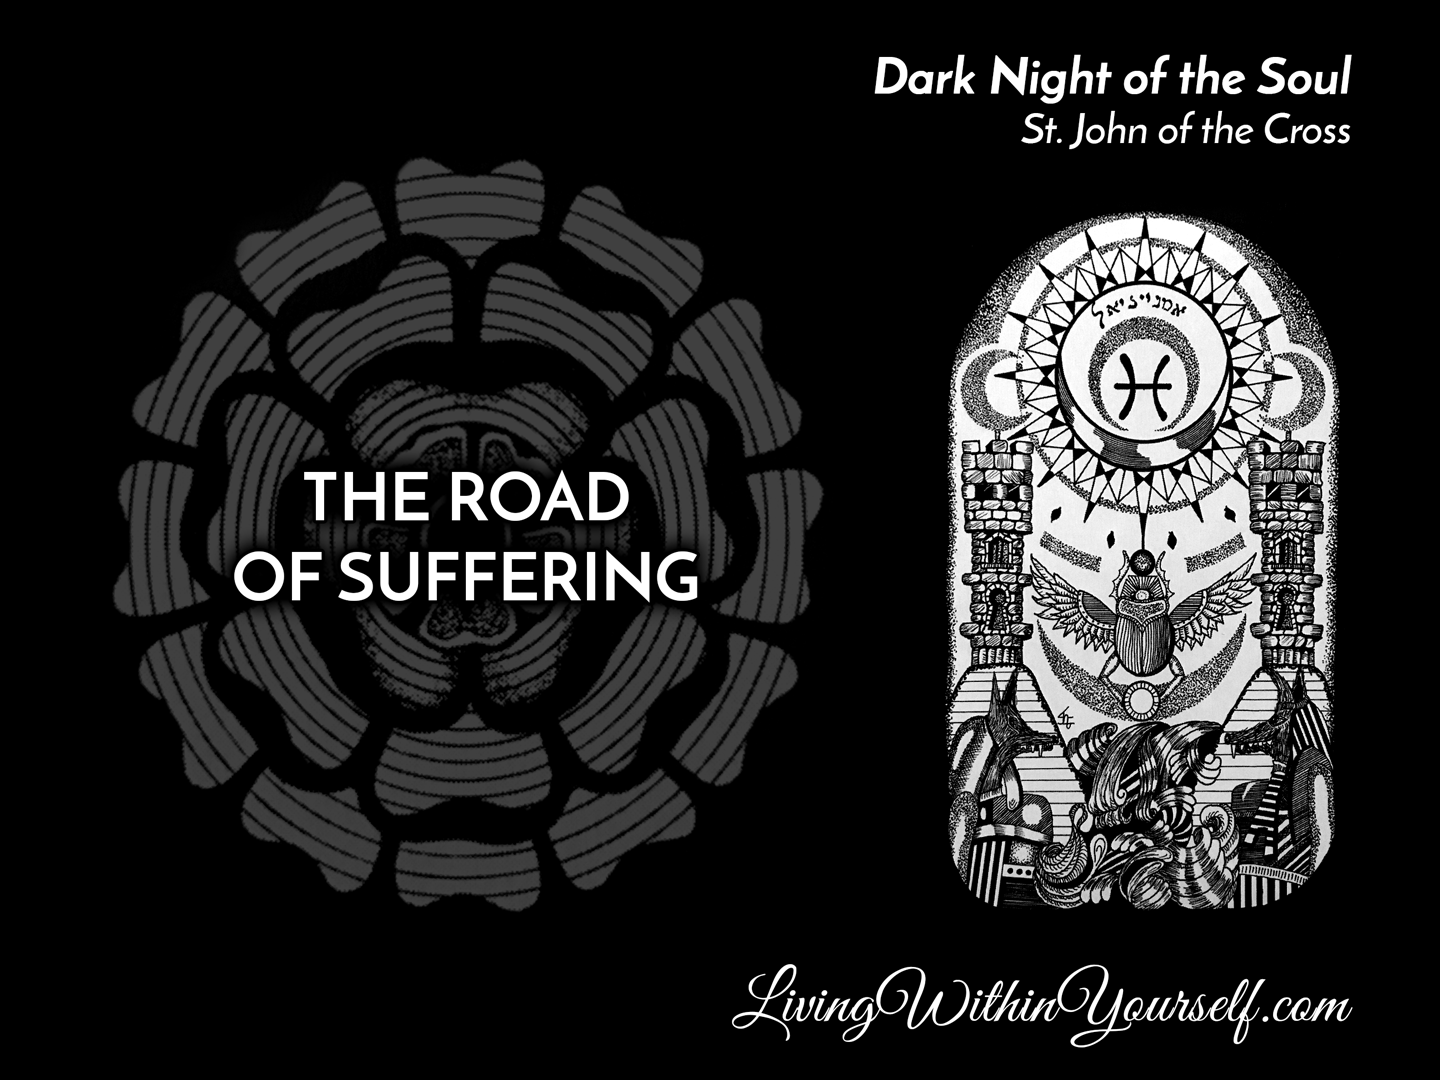 The Dark Night of the Soul - The Road of Suffering